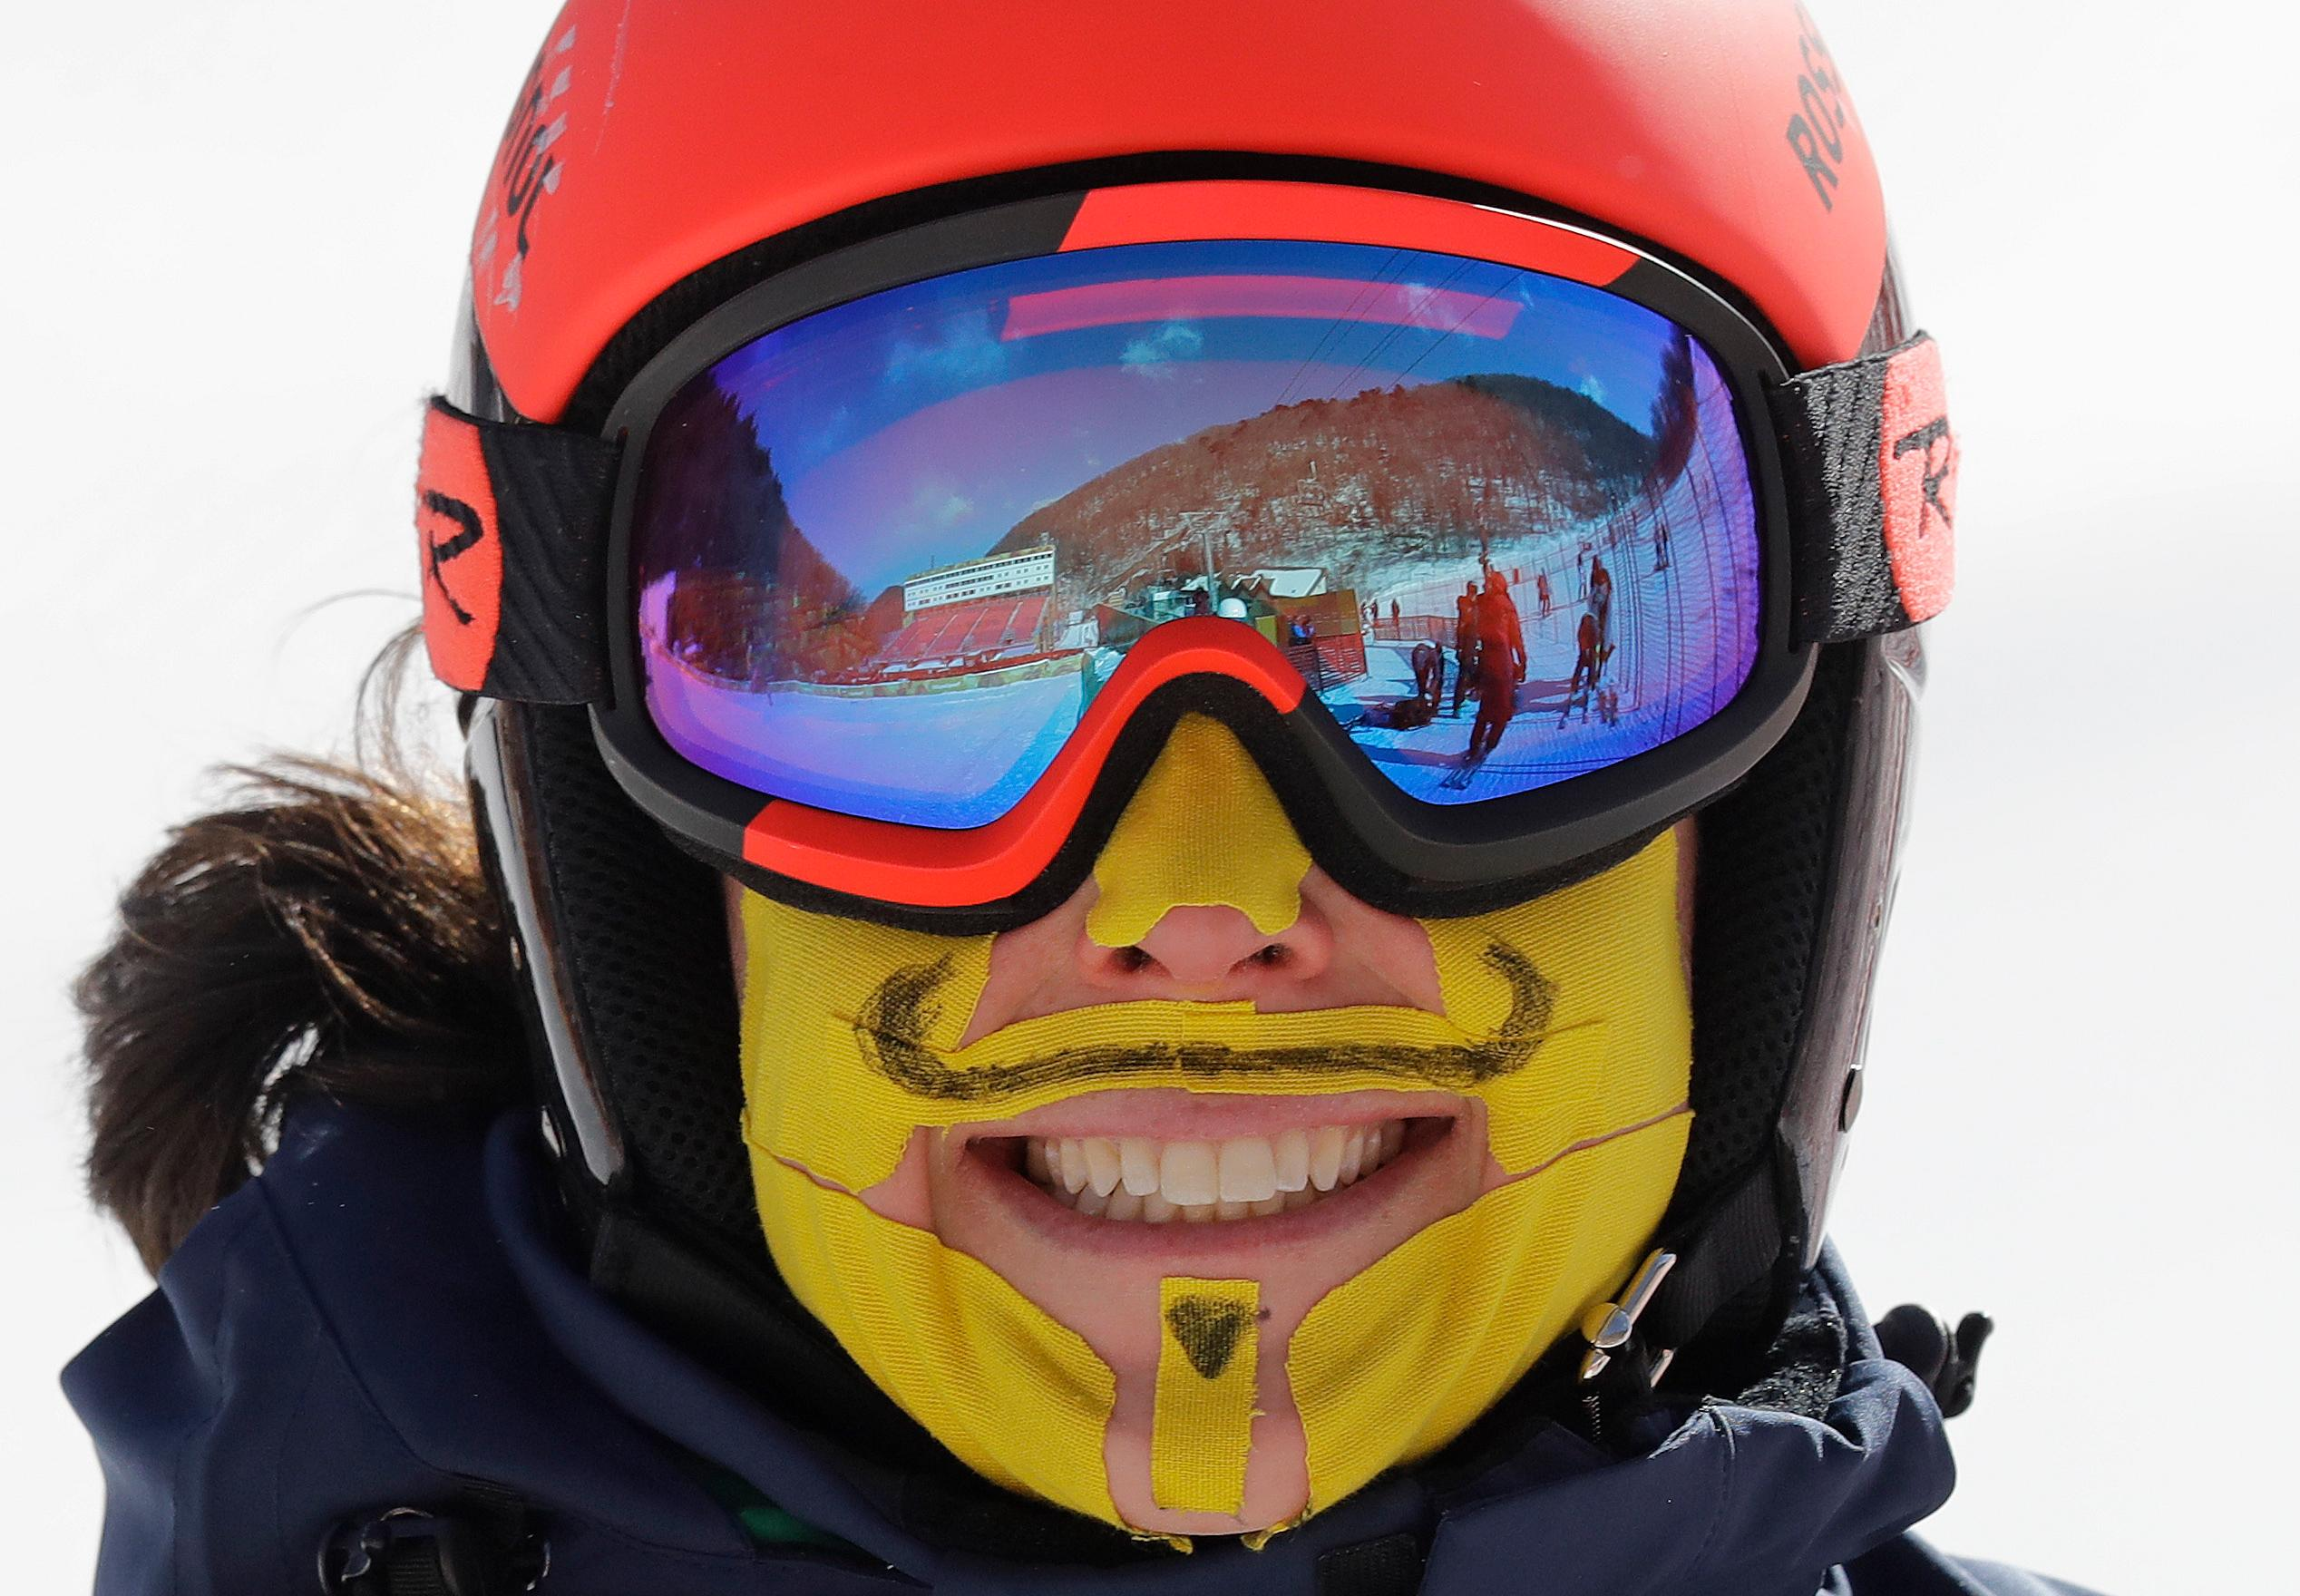 Italy's Federica Brignone has her face covered in tape to protect her from the cold during an inspection of the giant slalom course at the Yongpyong Alpine Center at the 2018 Winter Olympics in Pyeongchang, South Korea, Sunday, Feb. 11, 2018. (AP Photo/Michael Probst)